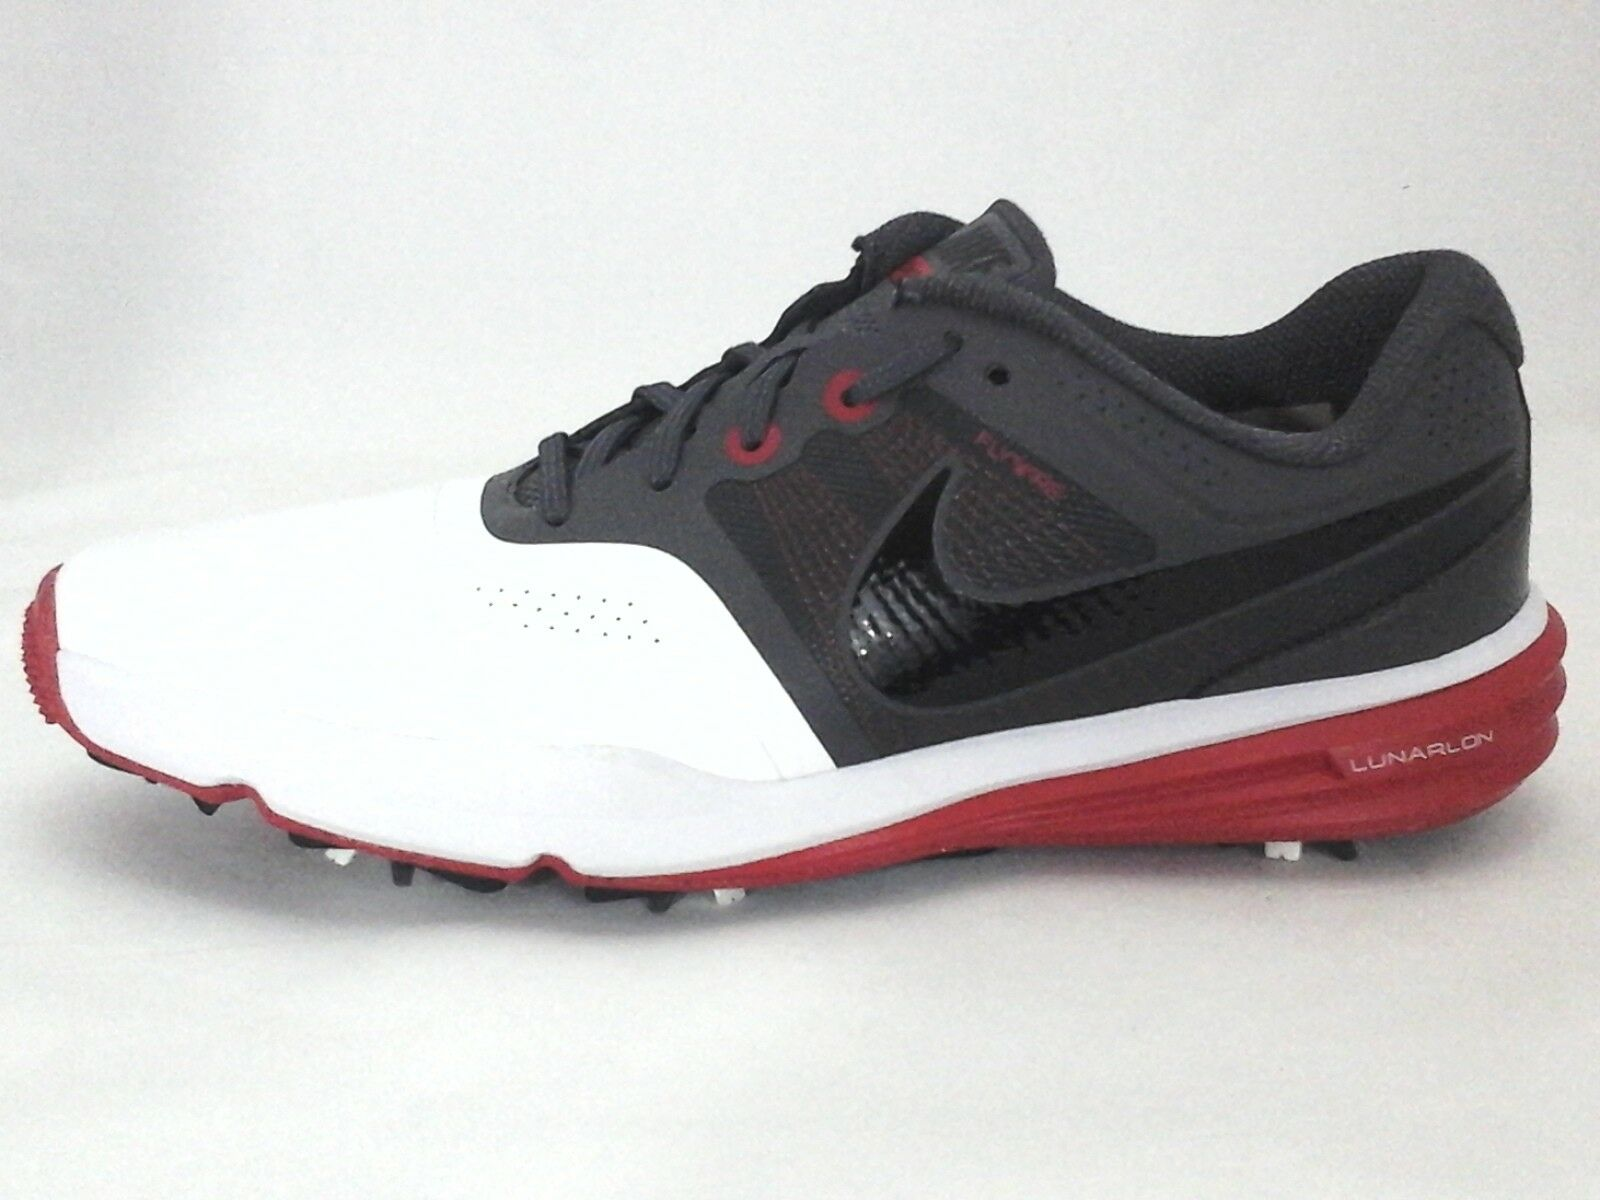 NIKE Golf Shoes Lunarlon Flywire Command White/Gray/Red Active Mens US 7